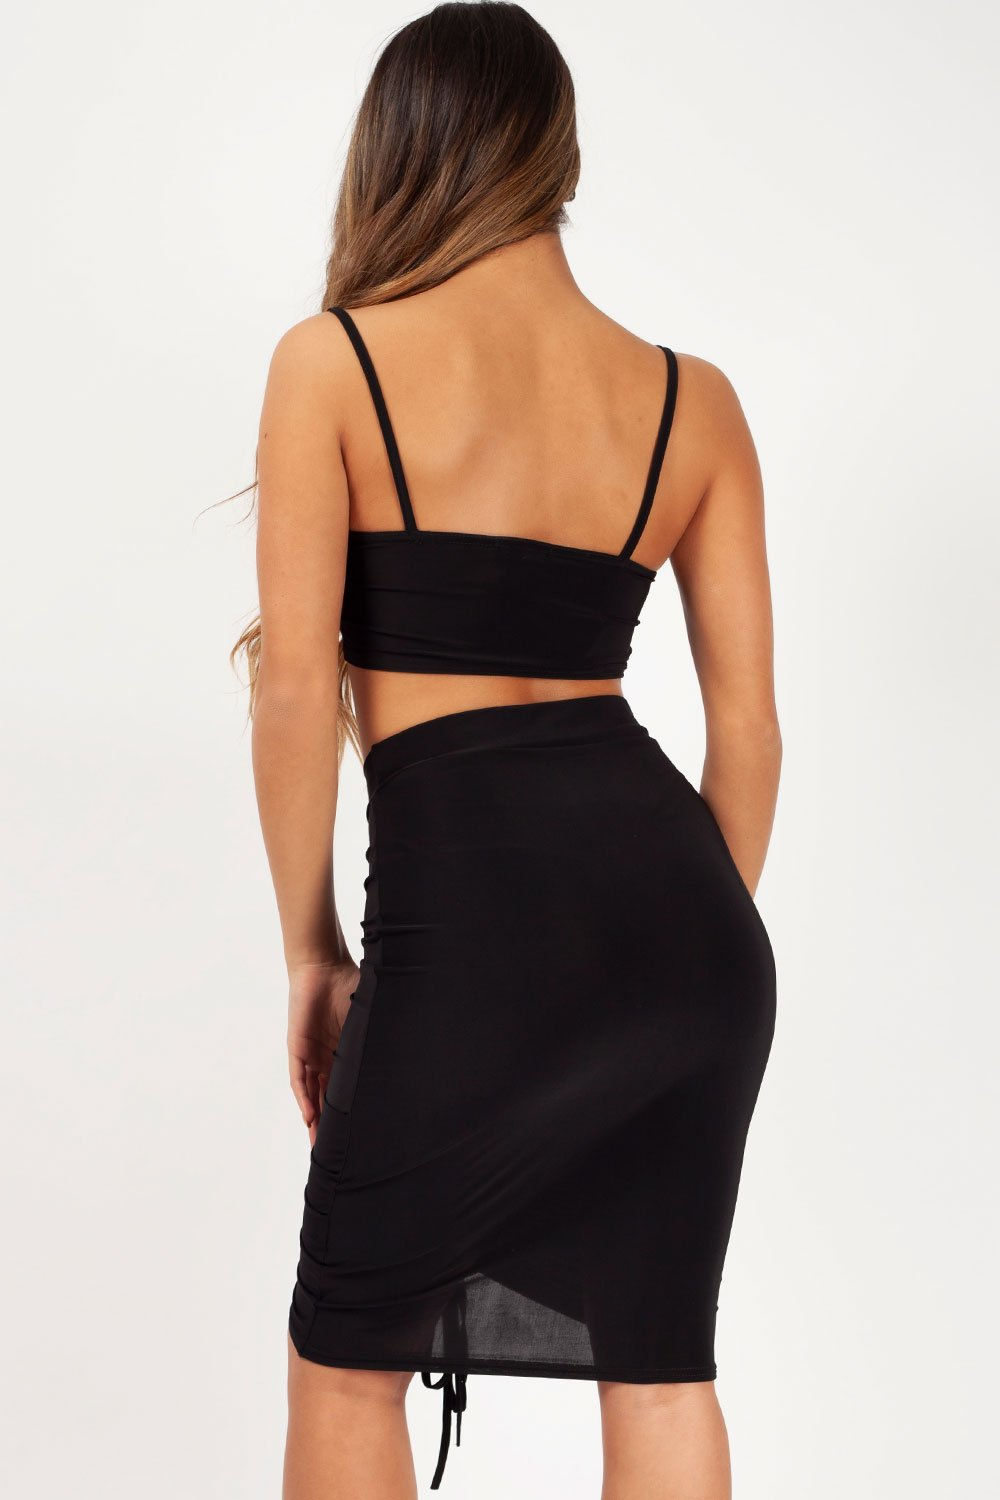 skirt and crop top set black